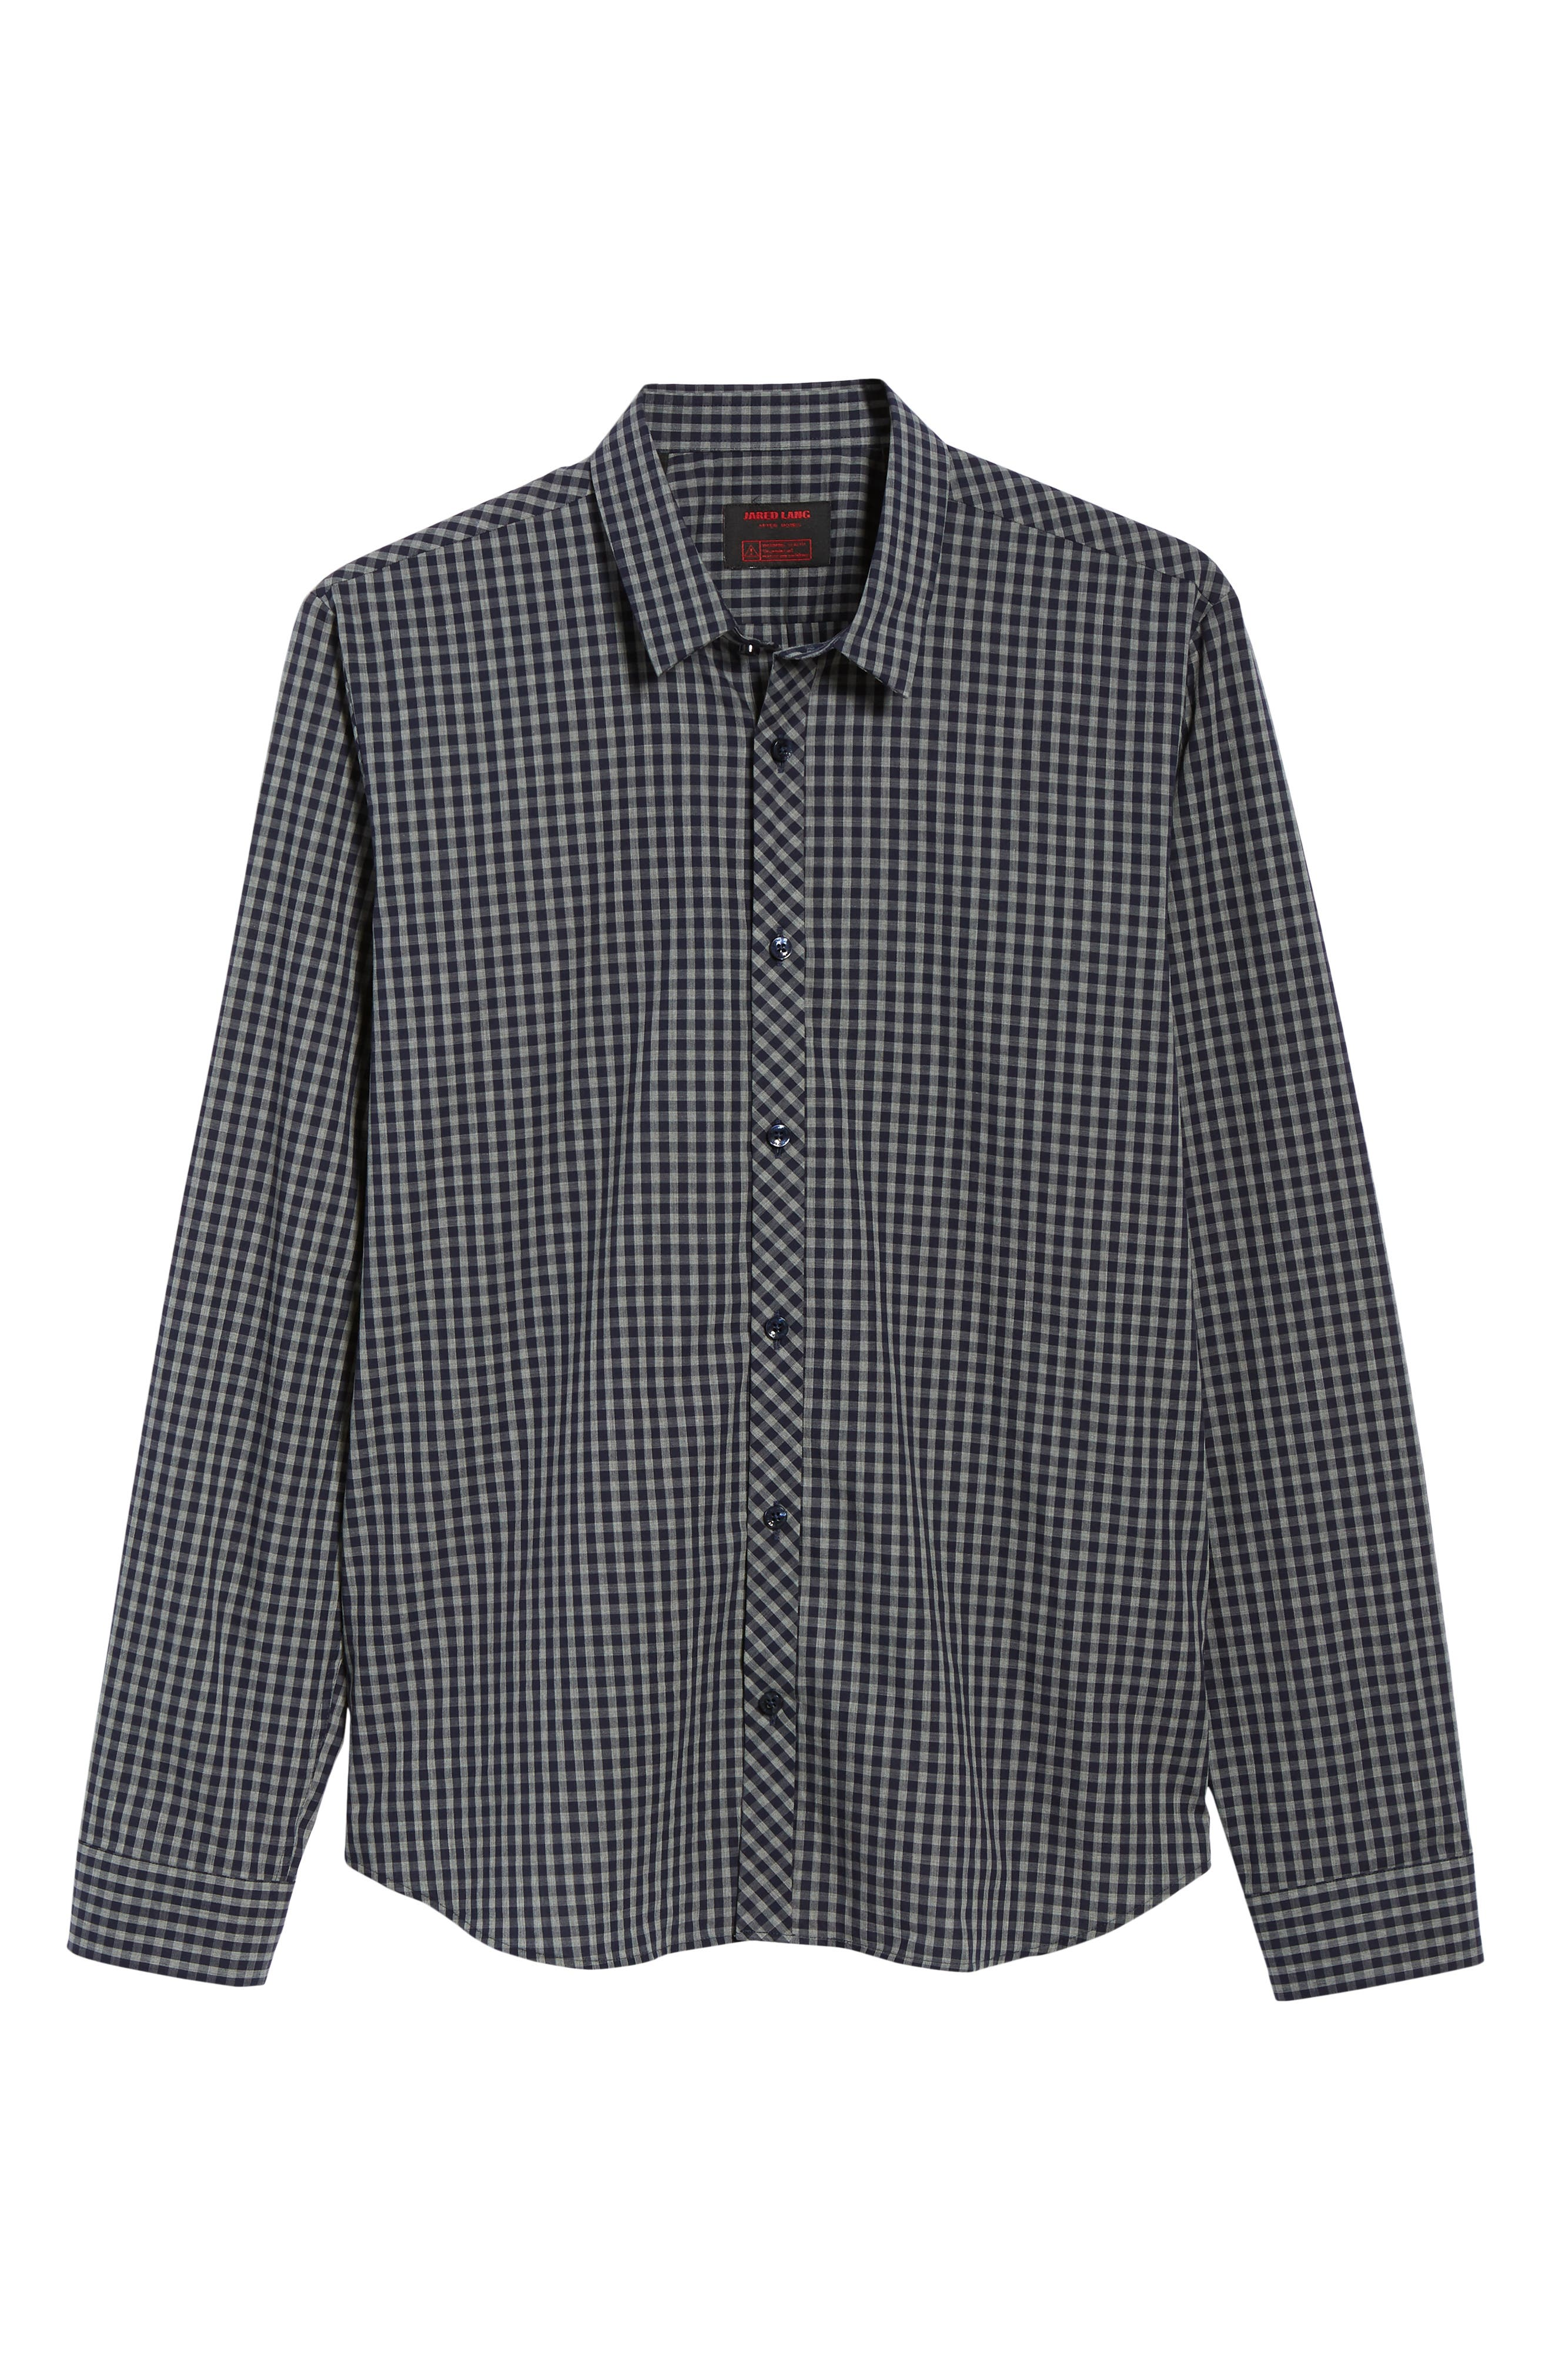 Trim Fit Sport Shirt,                             Alternate thumbnail 5, color,                             Navy Grey Check